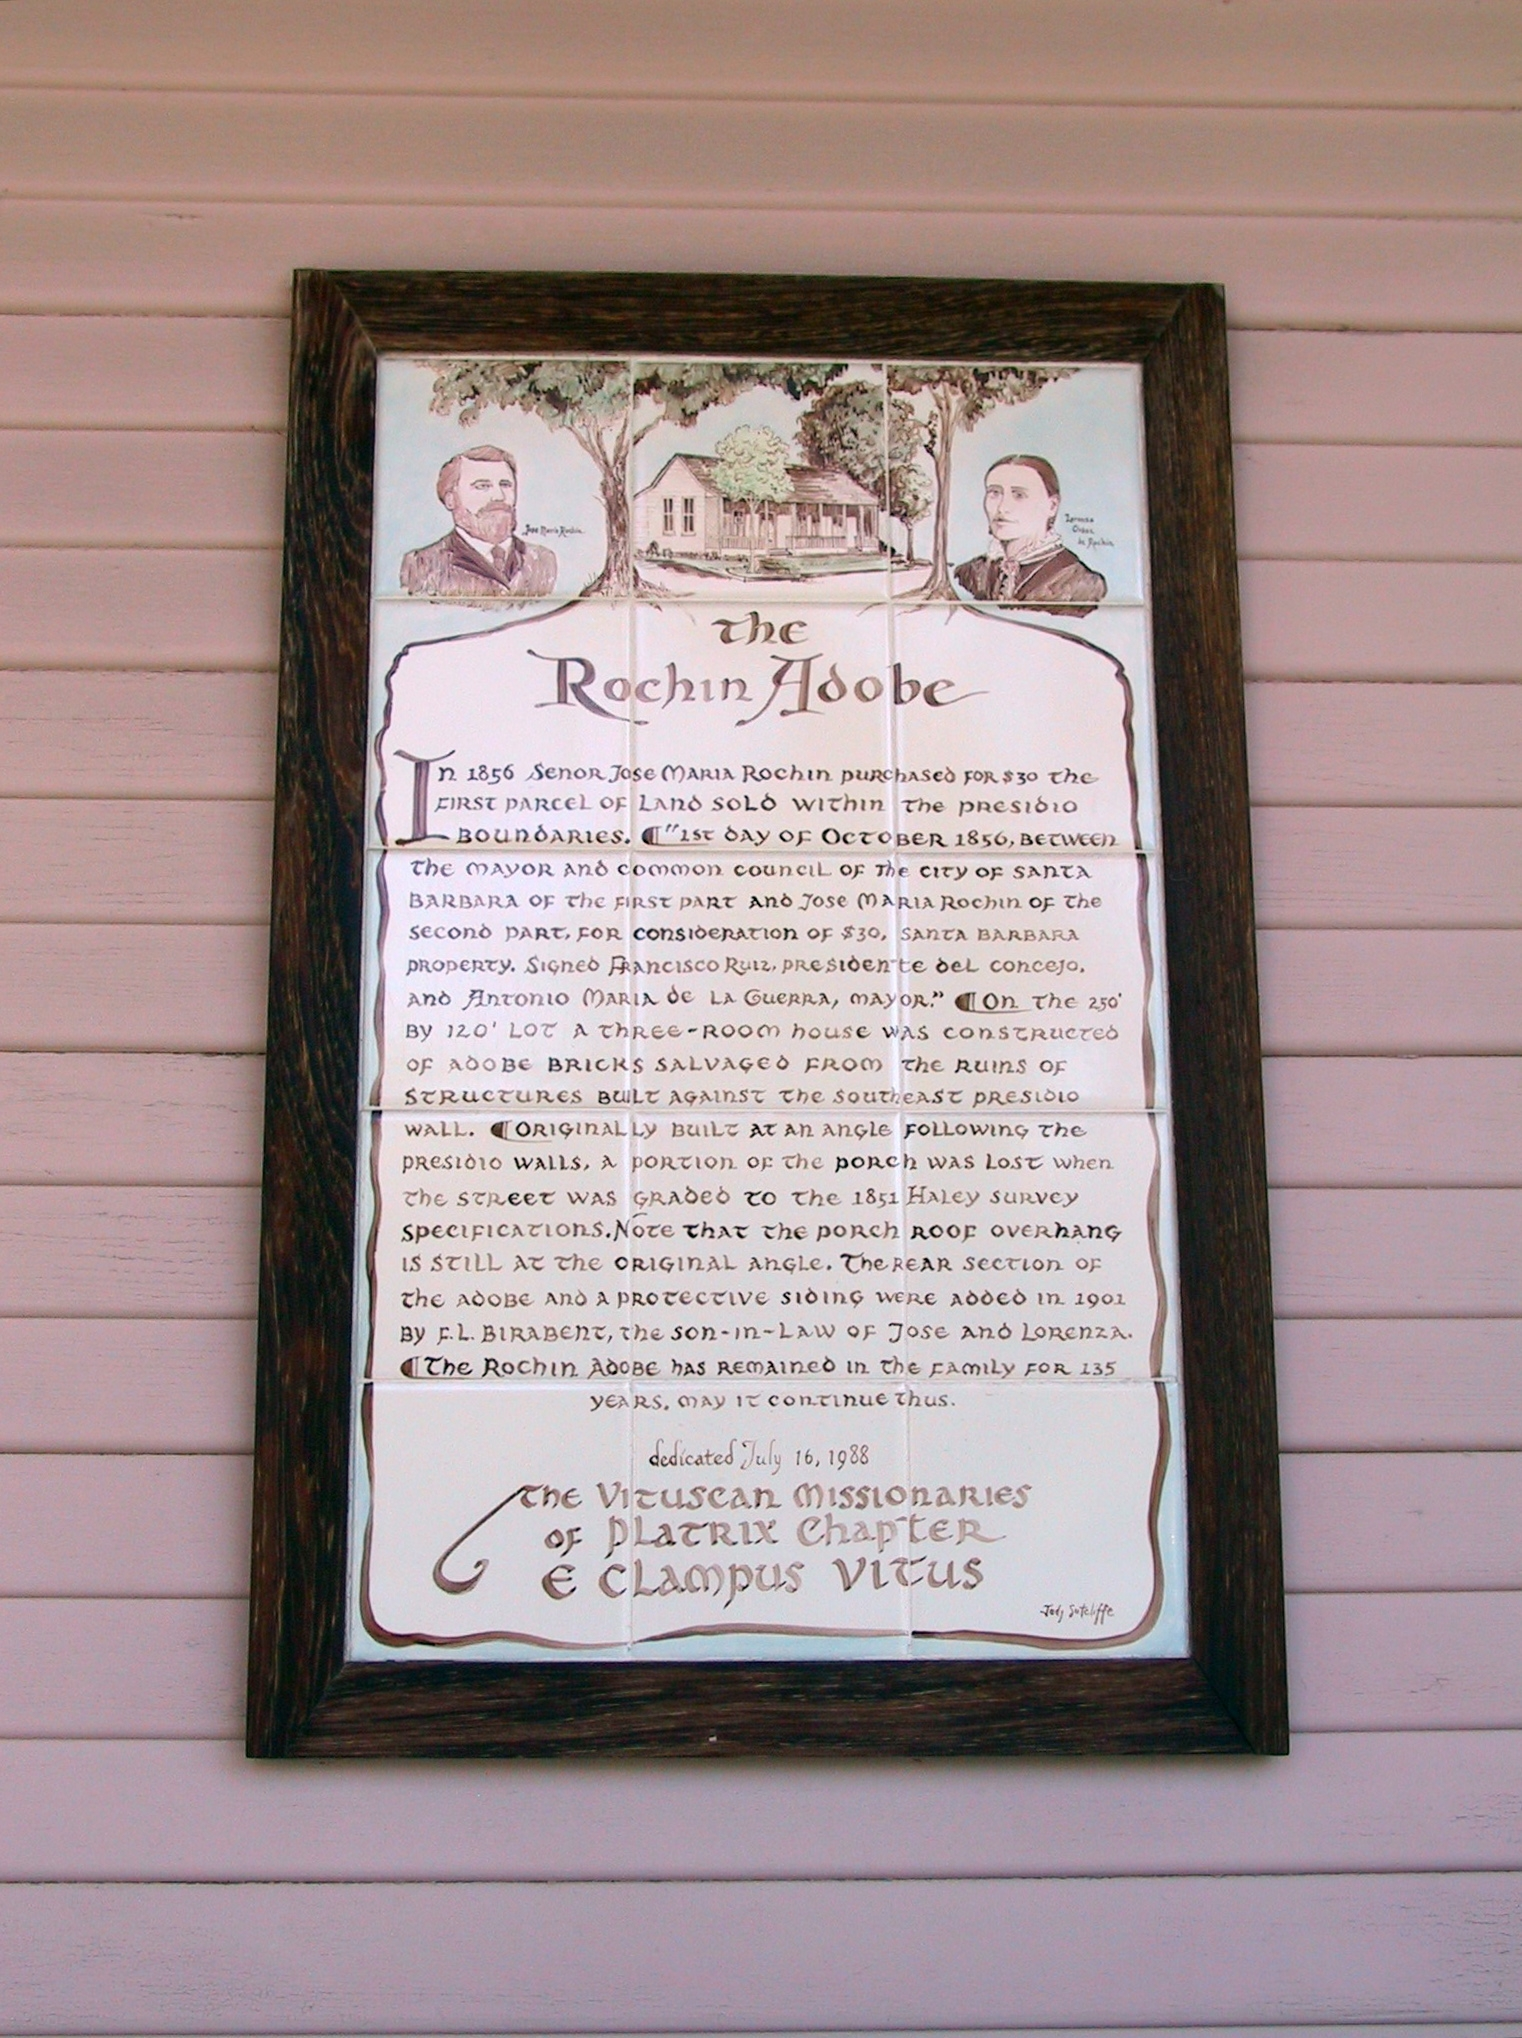 The Rochin Adobe Marker